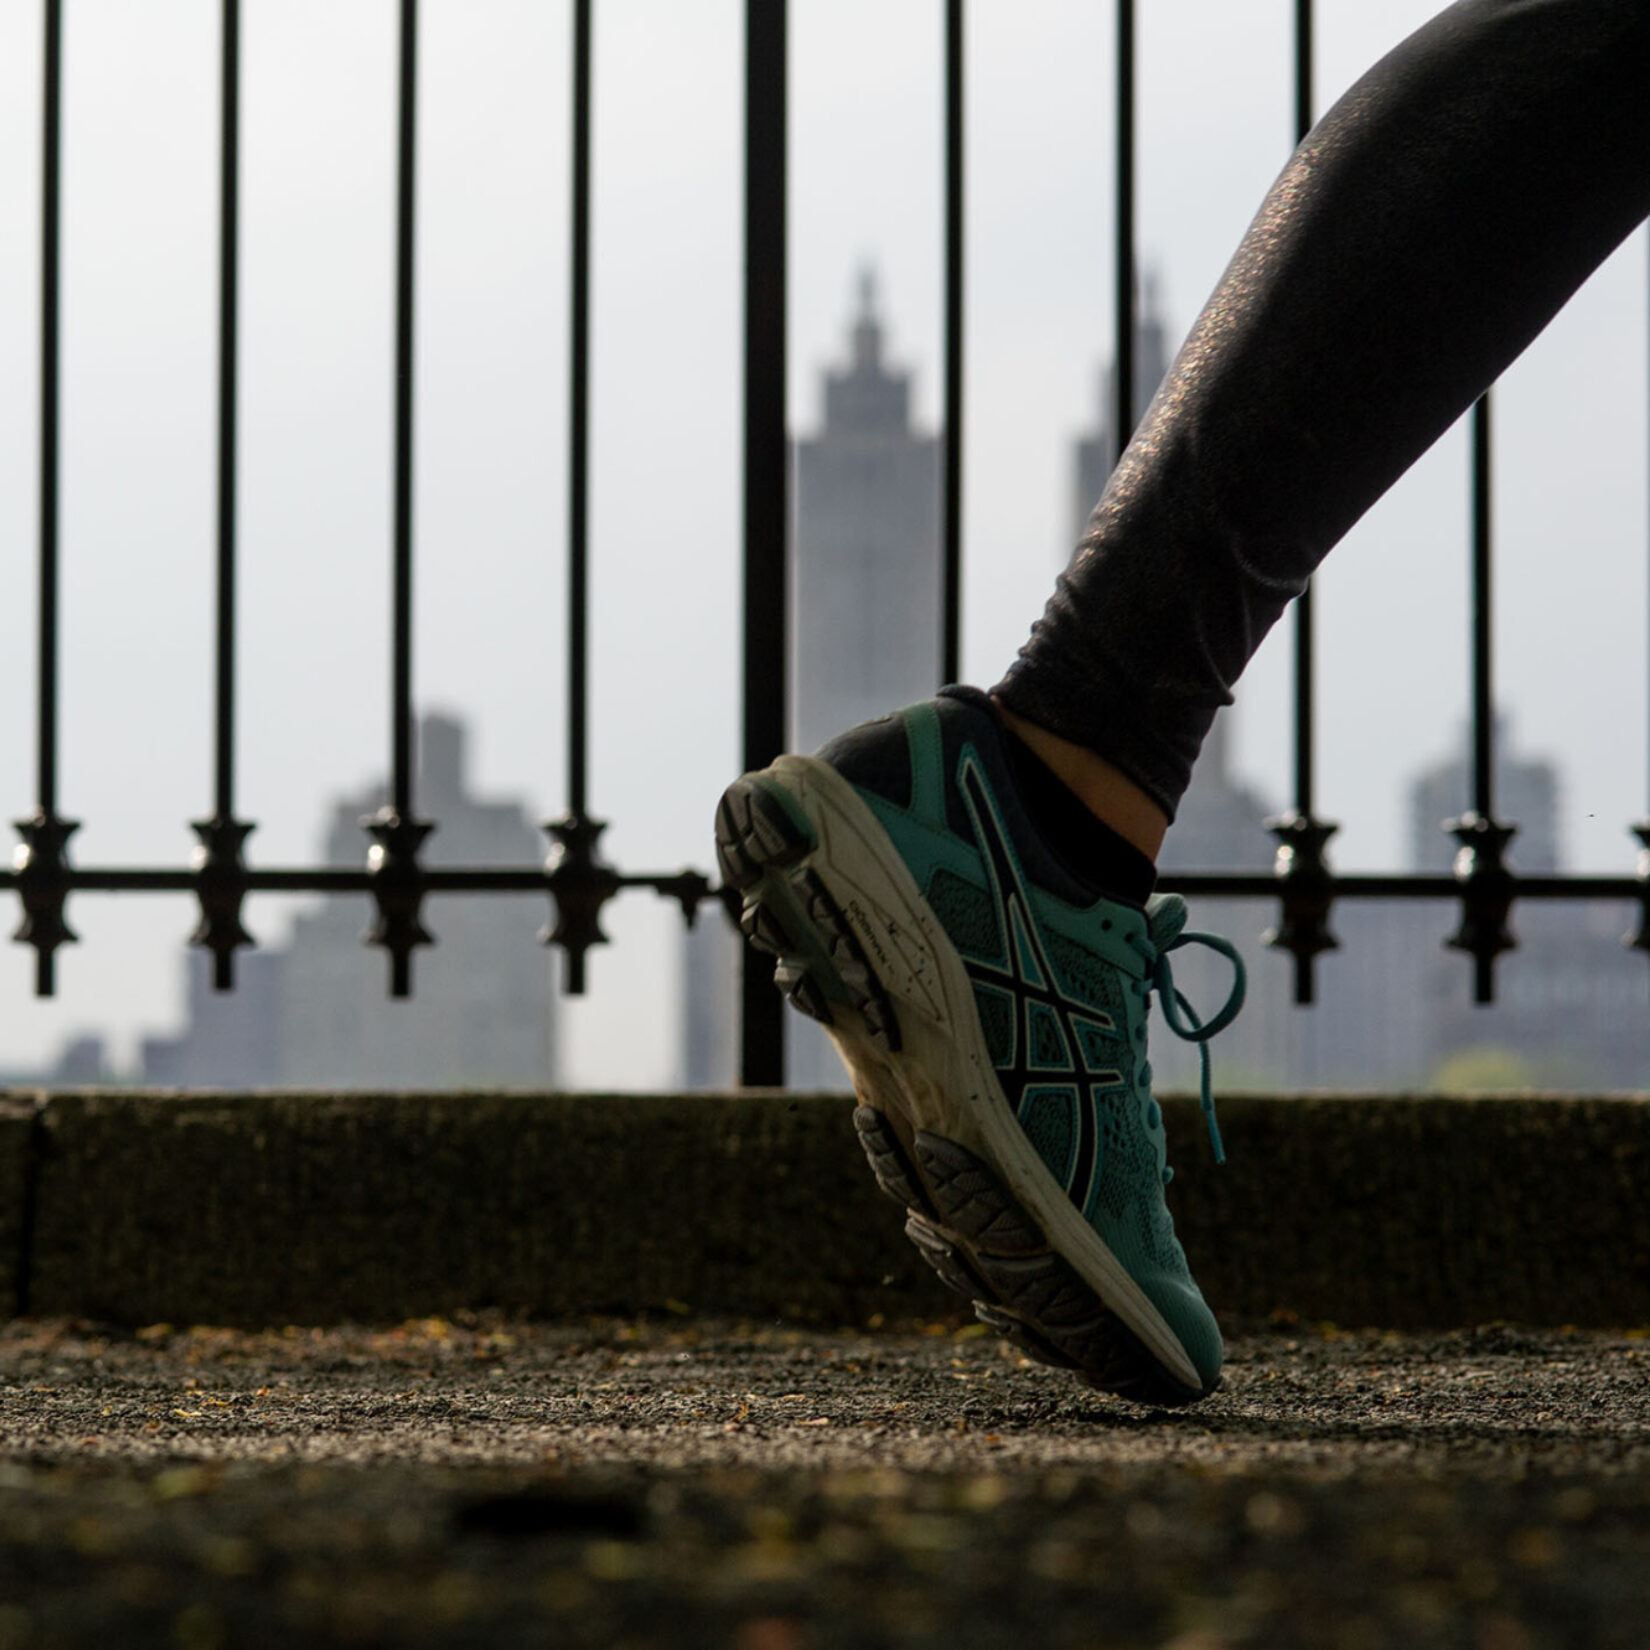 A close-up of a foot with the iron fence that surrounds the reservoir in the background